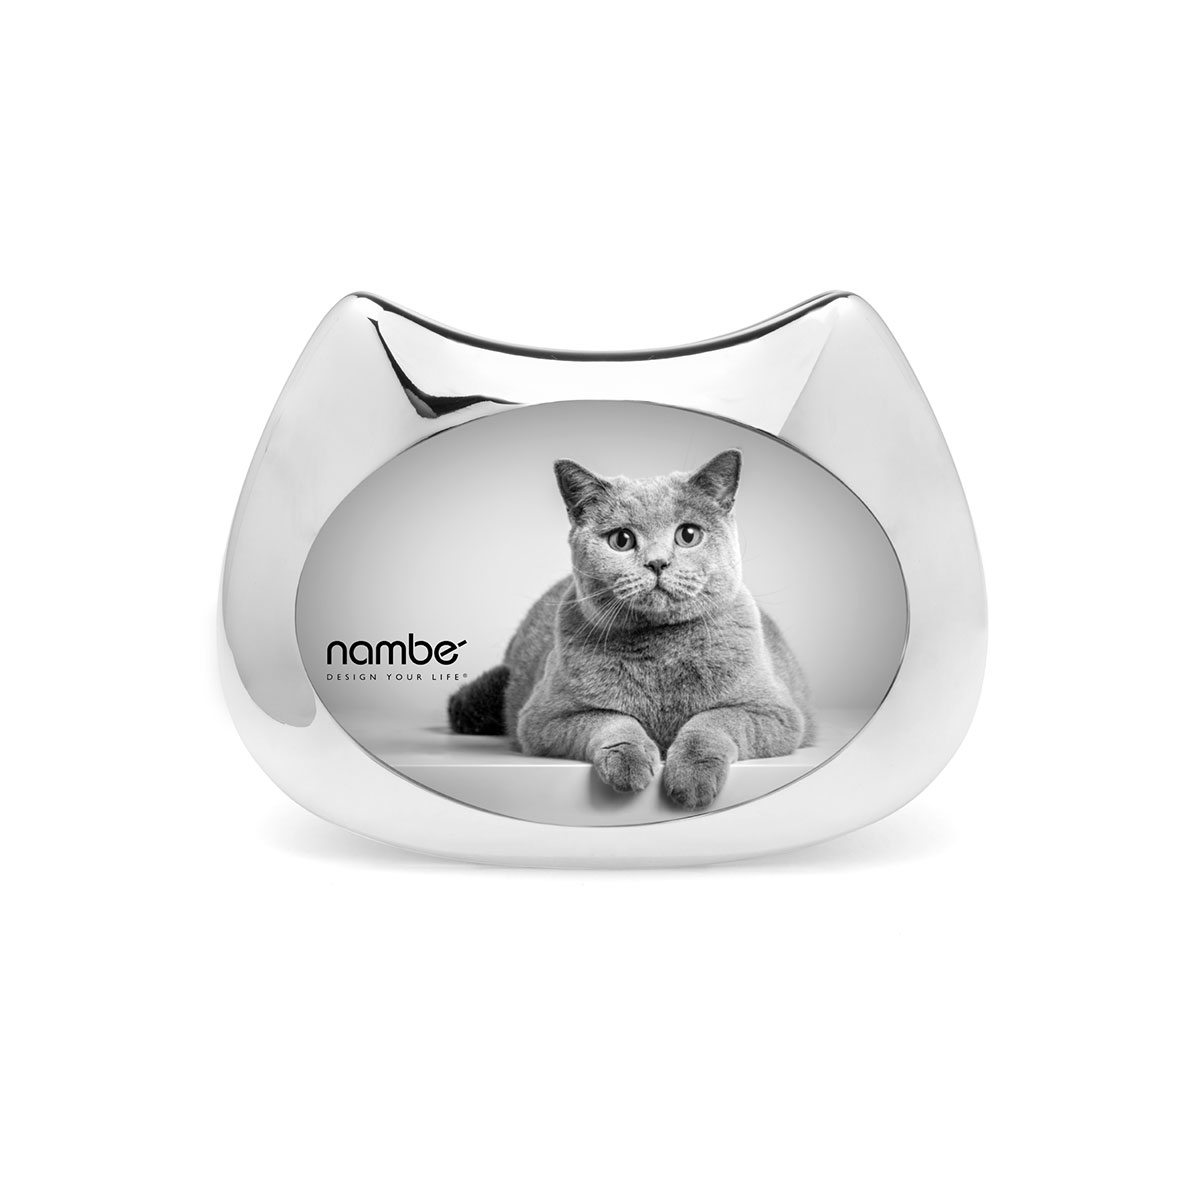 Nambe Pet Collection Cat Picture Frame